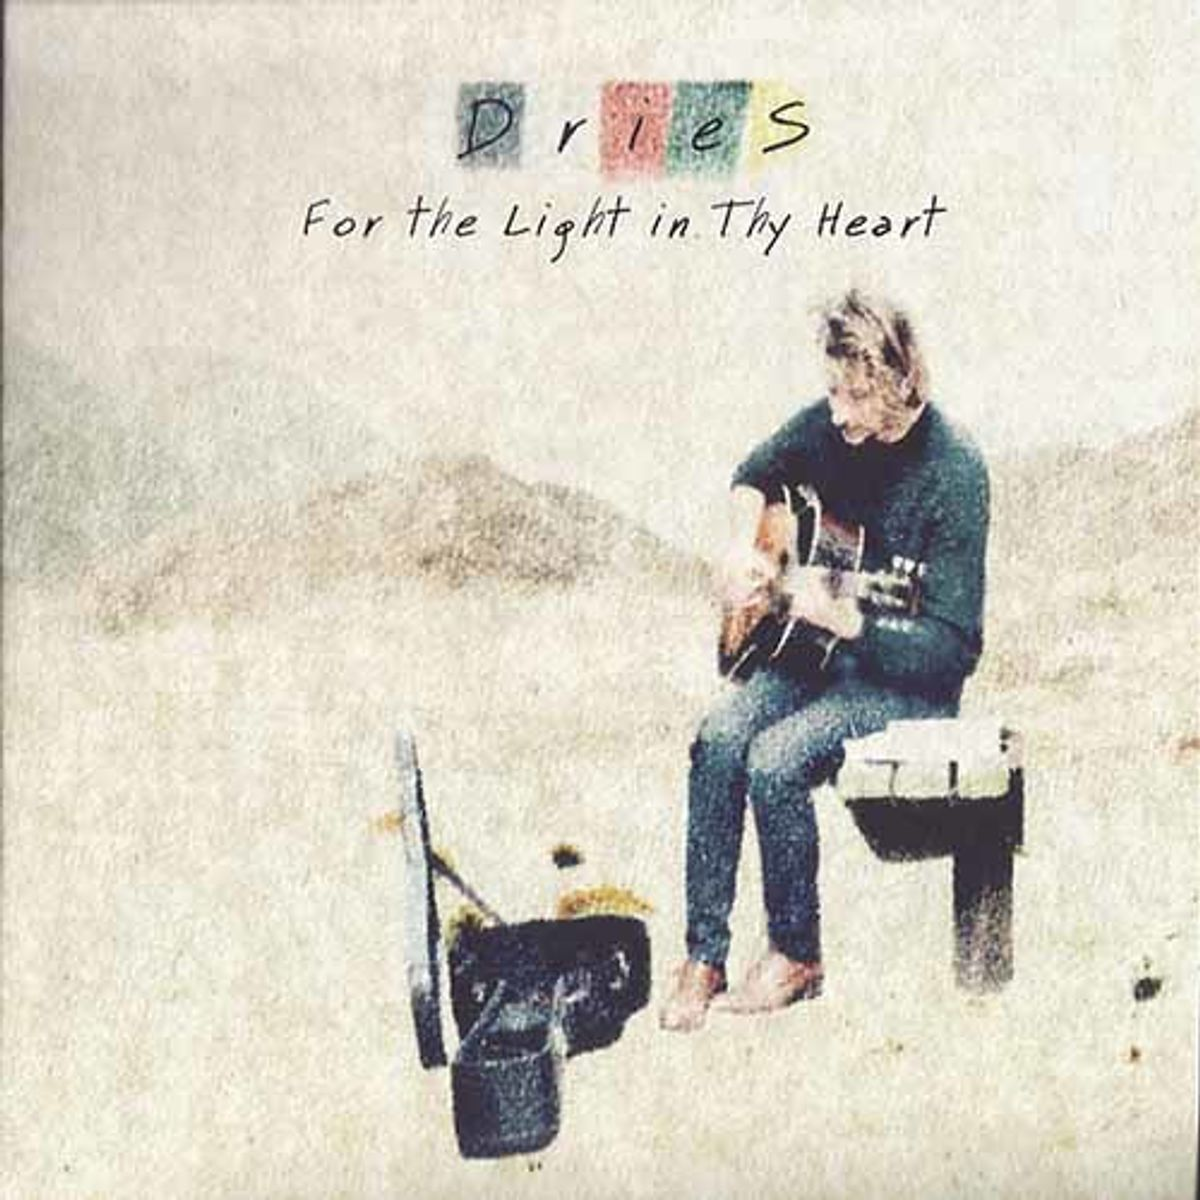 For The Light In Thy Heart